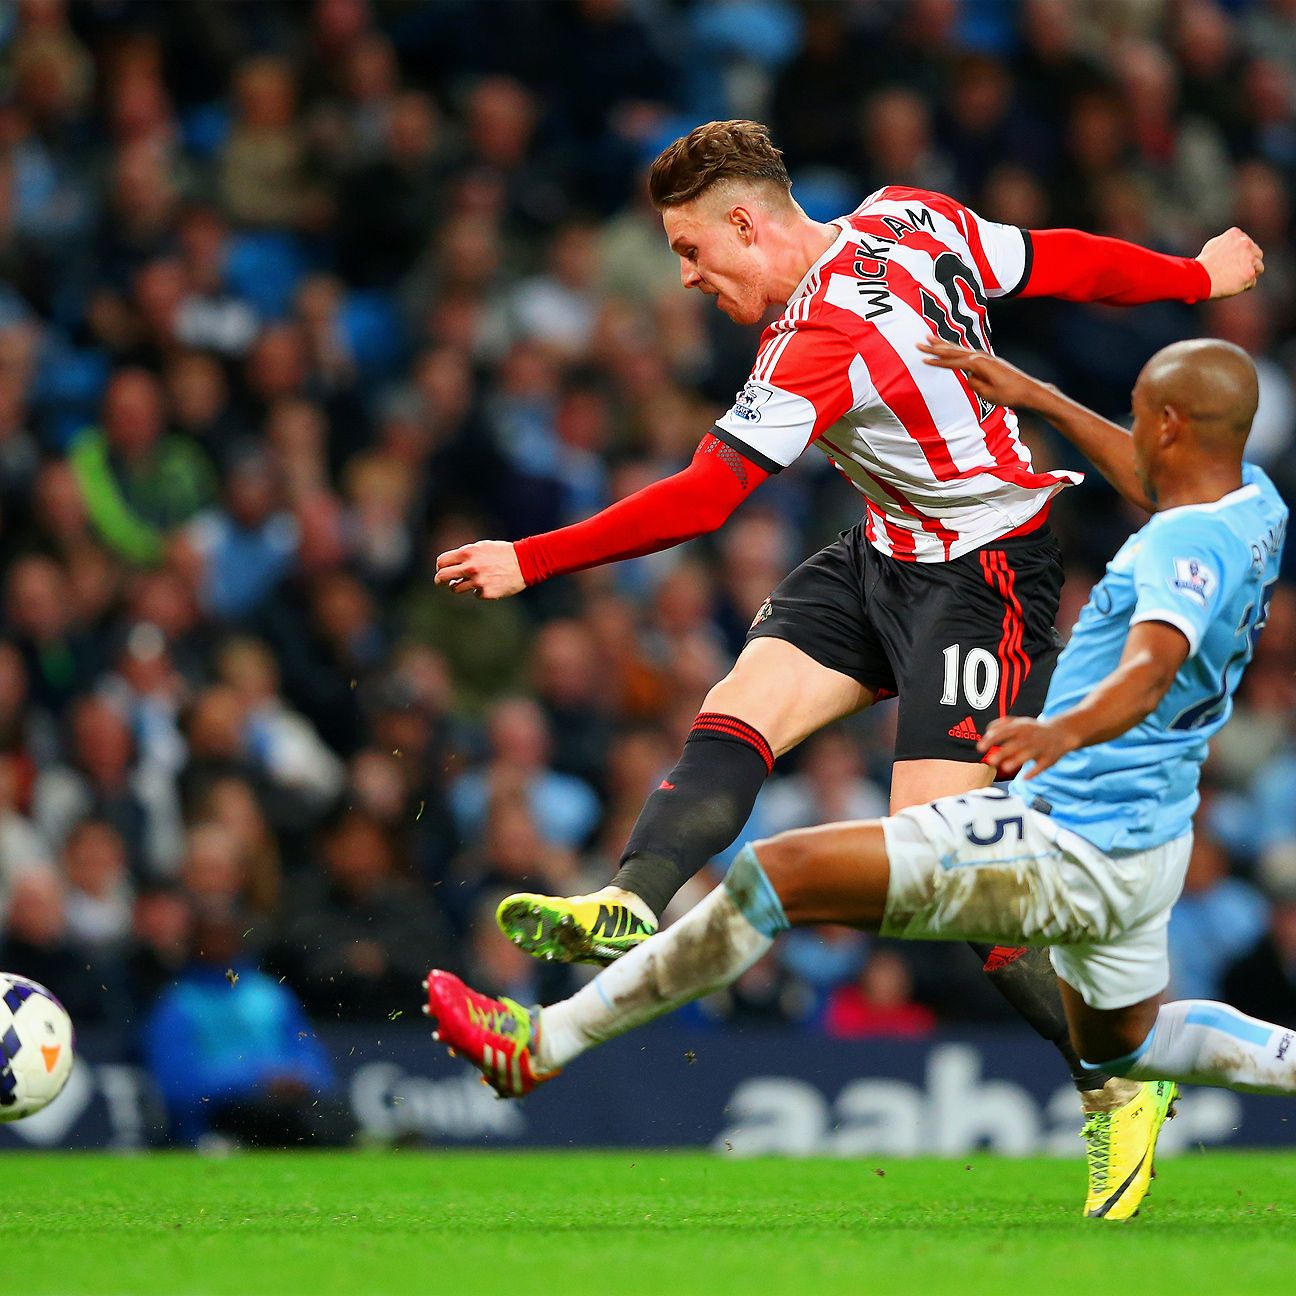 Connor Wickham struck for two goals in Sunderland's 2-2 draw at Manchester City last April.